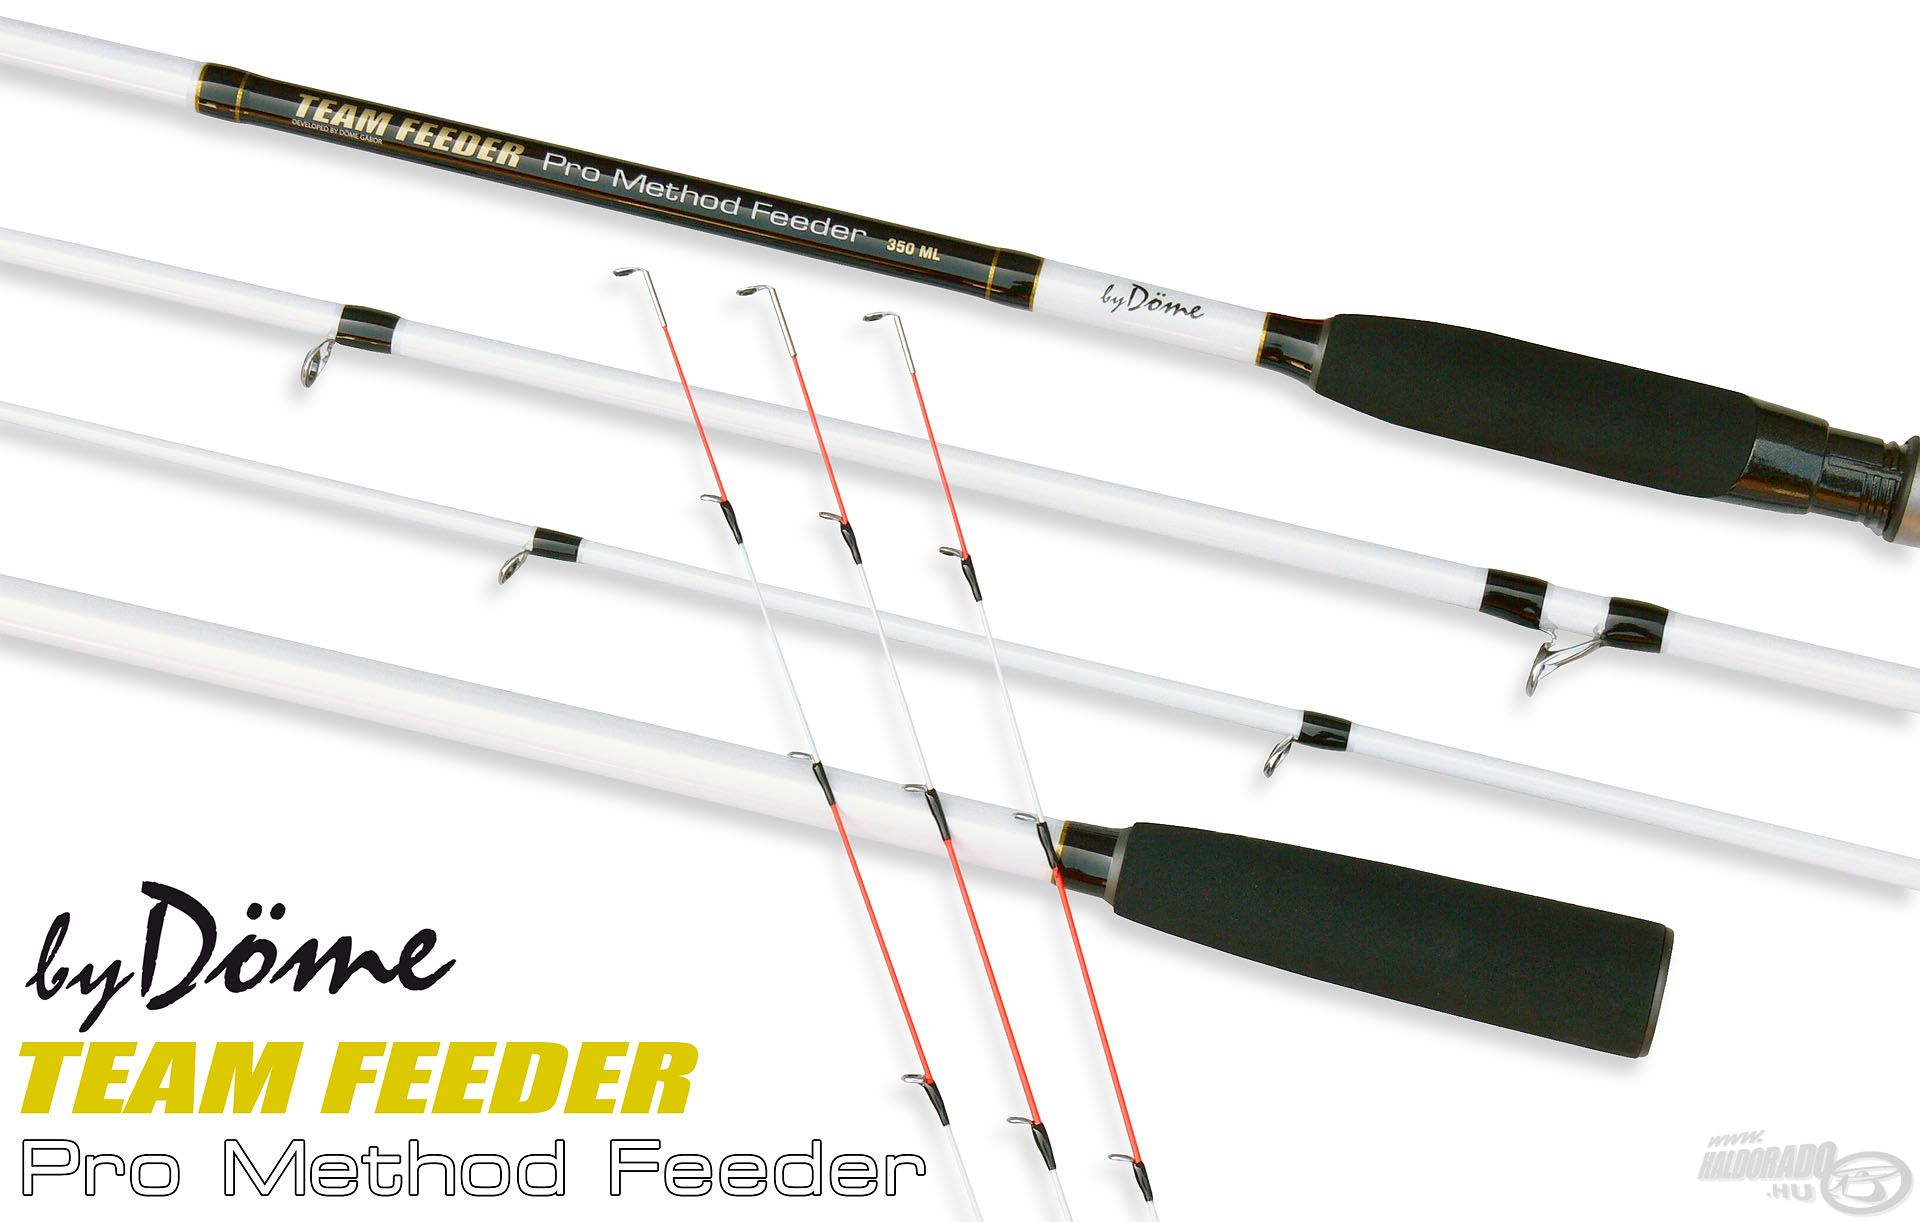 By Dome Team Feeder Pro Method Feeder Pruty